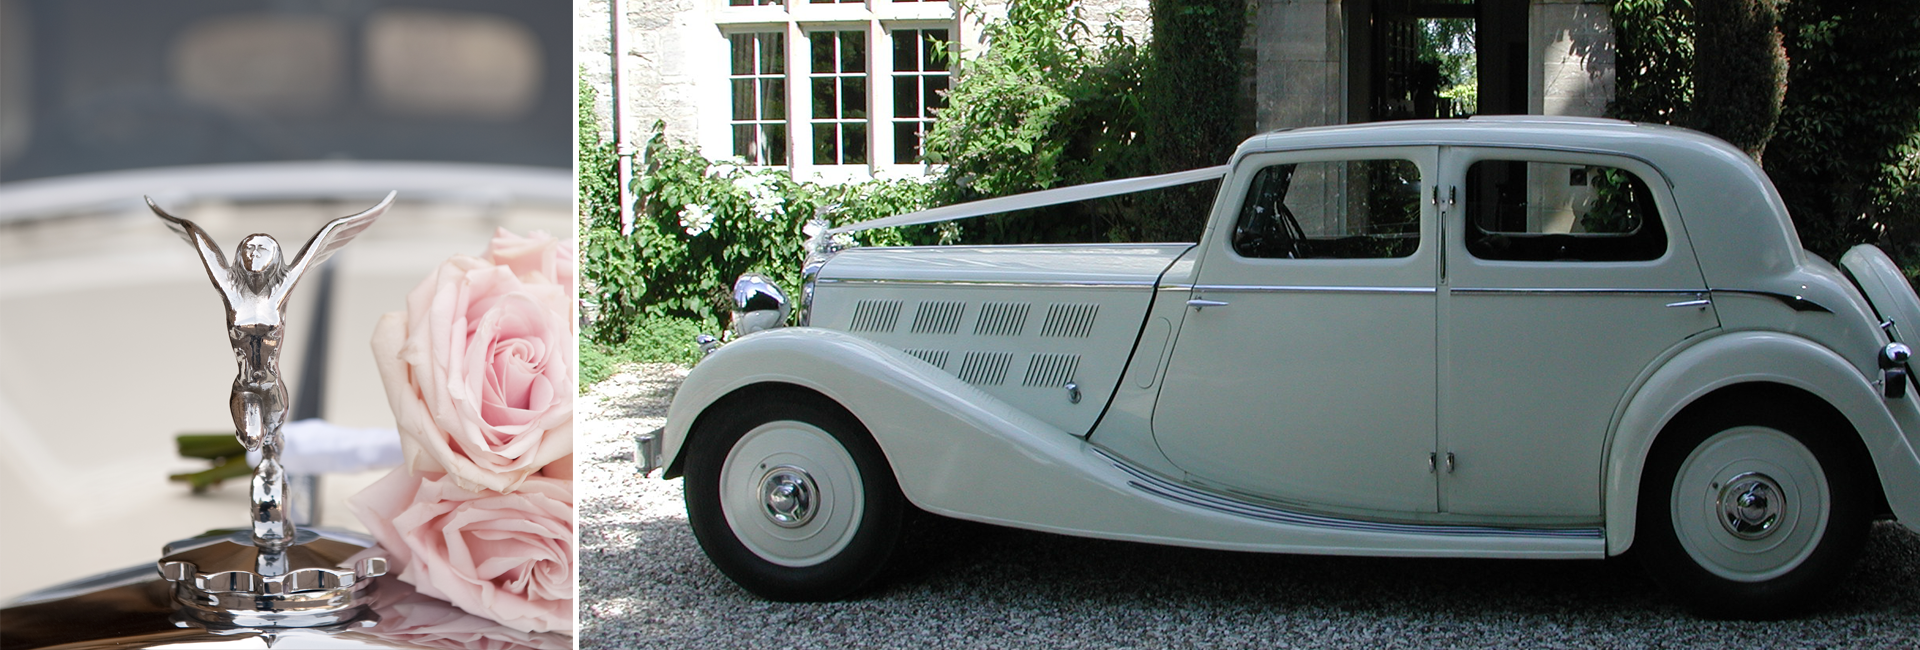 Vintage Wedding Cars - Classic Triumph | Our Car